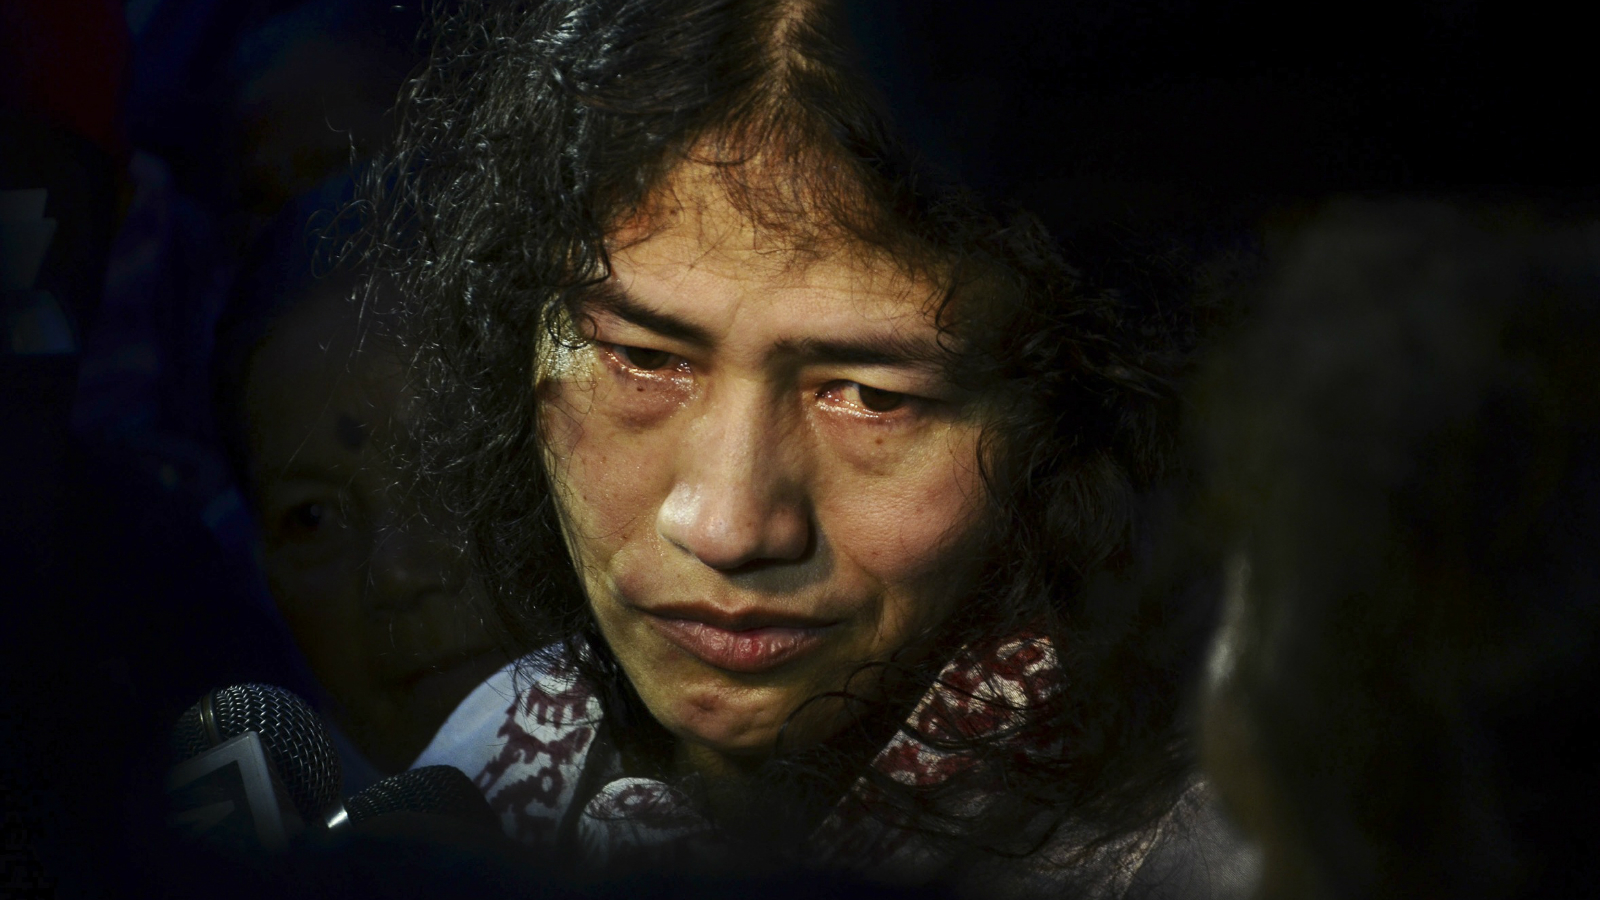 In this Wednesday, Aug. 20, 2014 photo, Irom Sharmila speaks to the media outside a security ward after her release in Porompal district, in Imphal, India. India's most famous prisoner of conscience walked free after nearly 14 years in jail but vowed to continue the hunger strike that landed her in prison for attempted suicide. Sharmila, 42, has not eaten a single morsel of food voluntarily since November 2000, when she began her protest against an Indian law that suspends many human rights protections in areas of conflict.